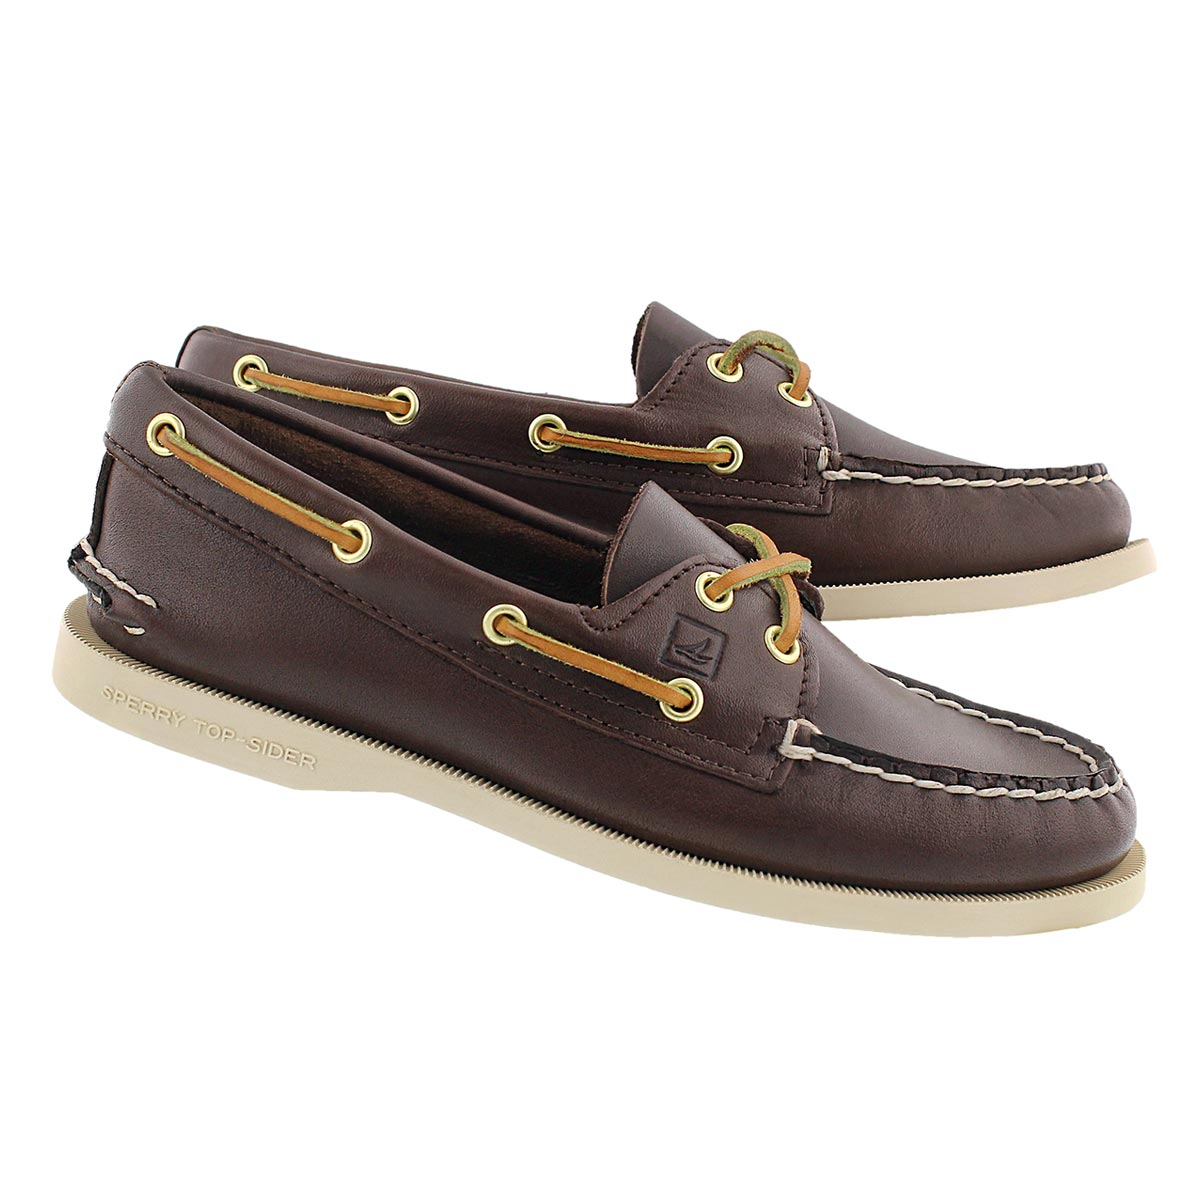 Lds A/O 2-eye brown boat shoe